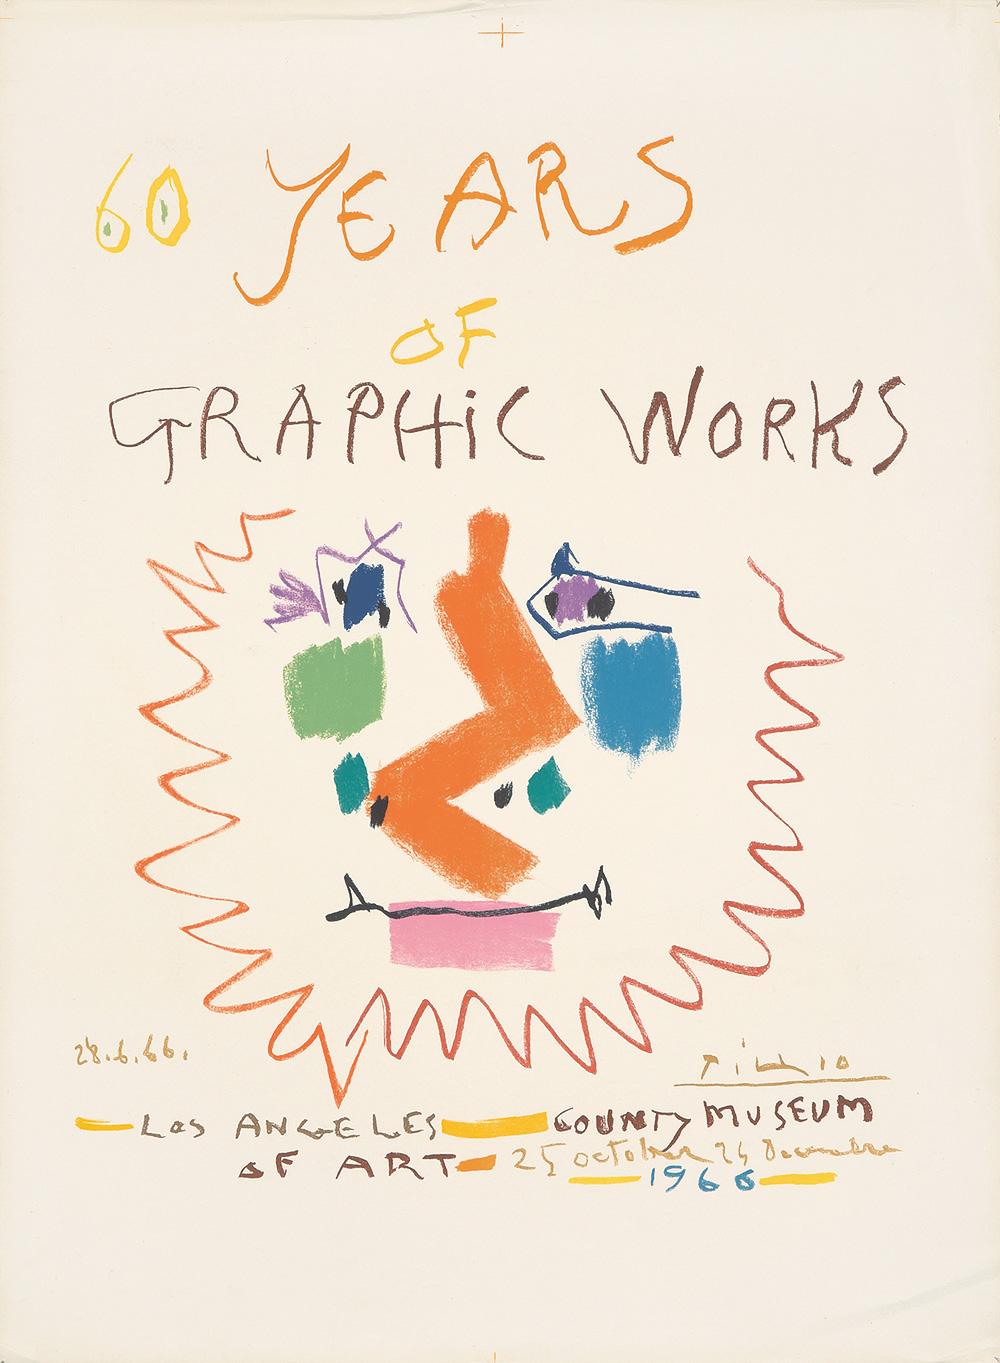 419. 60 Years of Graphic Works. 1966.